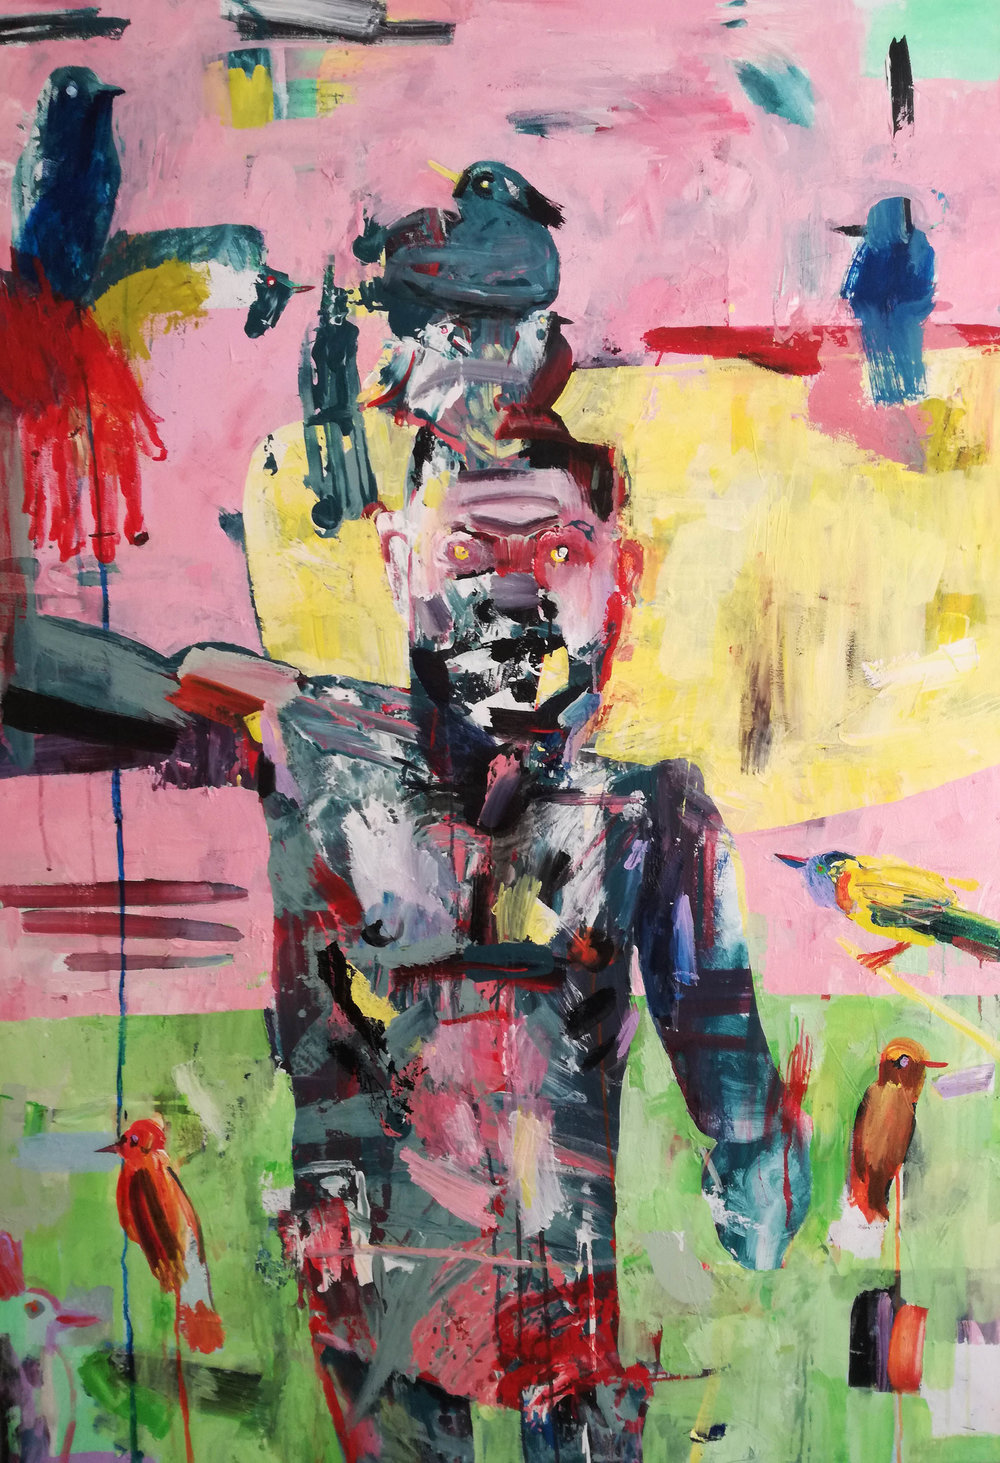 ' Birdcatcher'   Su Opperman  Mixed media on canvas  1540 x 1060 x 30 mm  R 18 000.00 (SOLD)